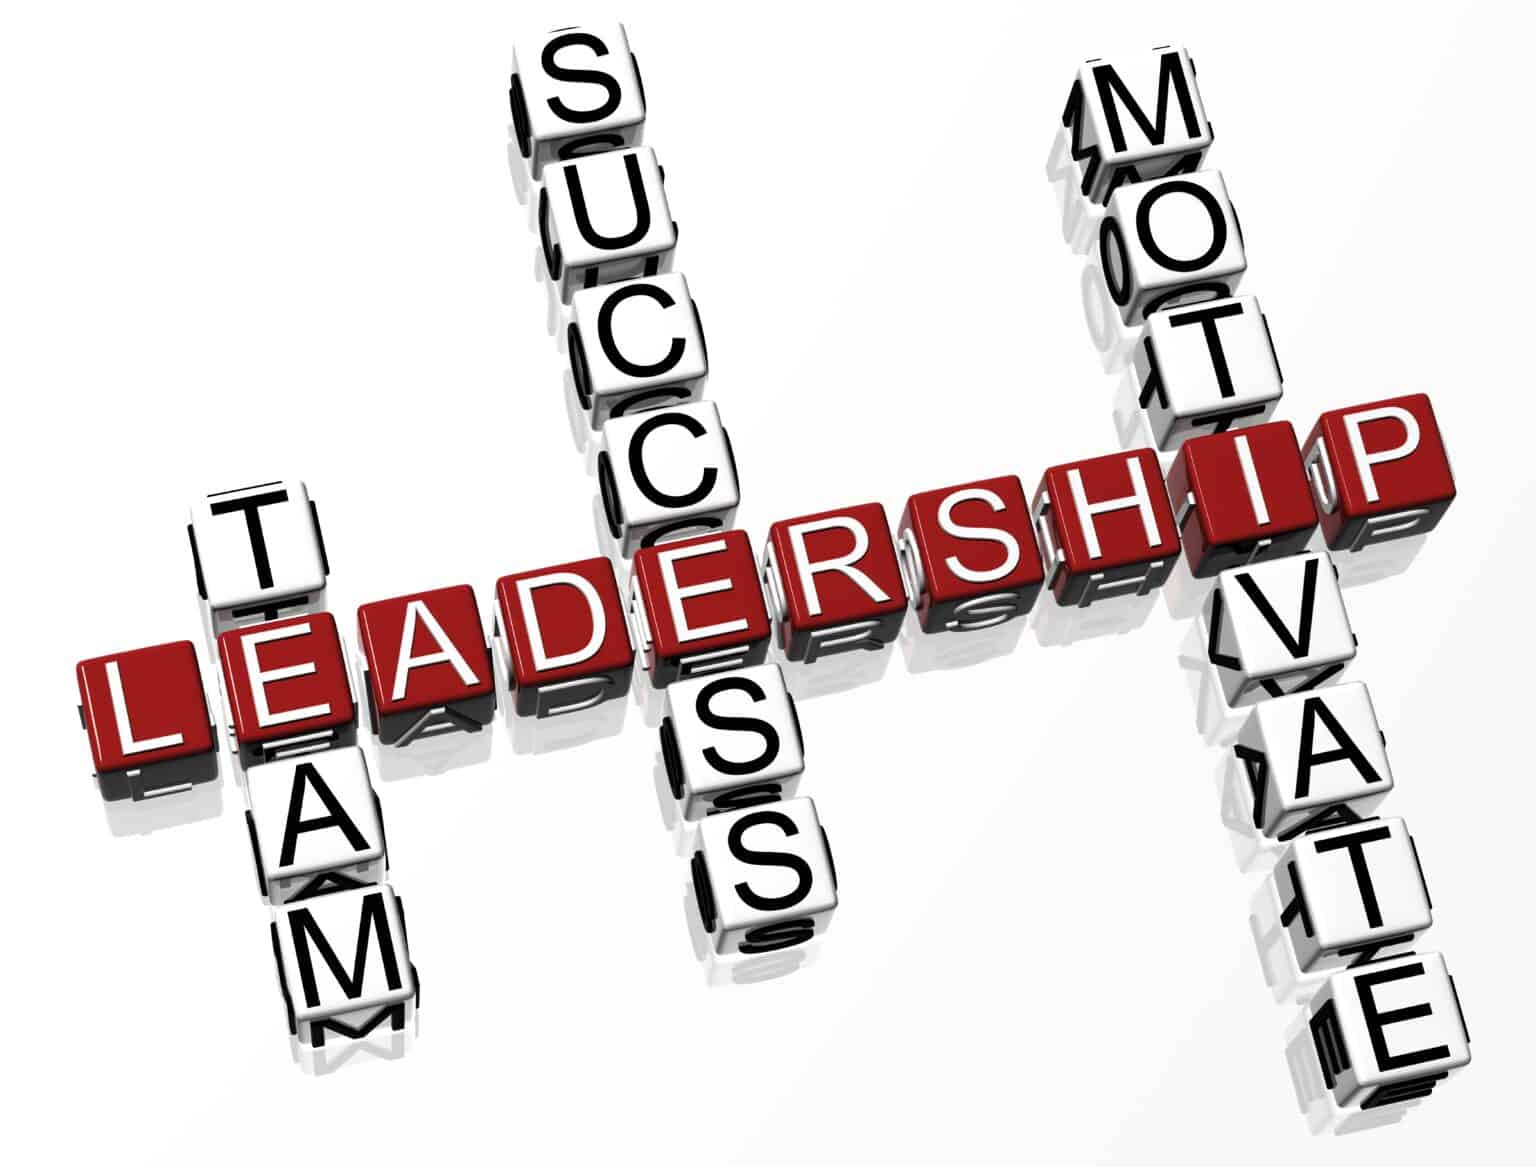 3D Leadership Crossword text on white background